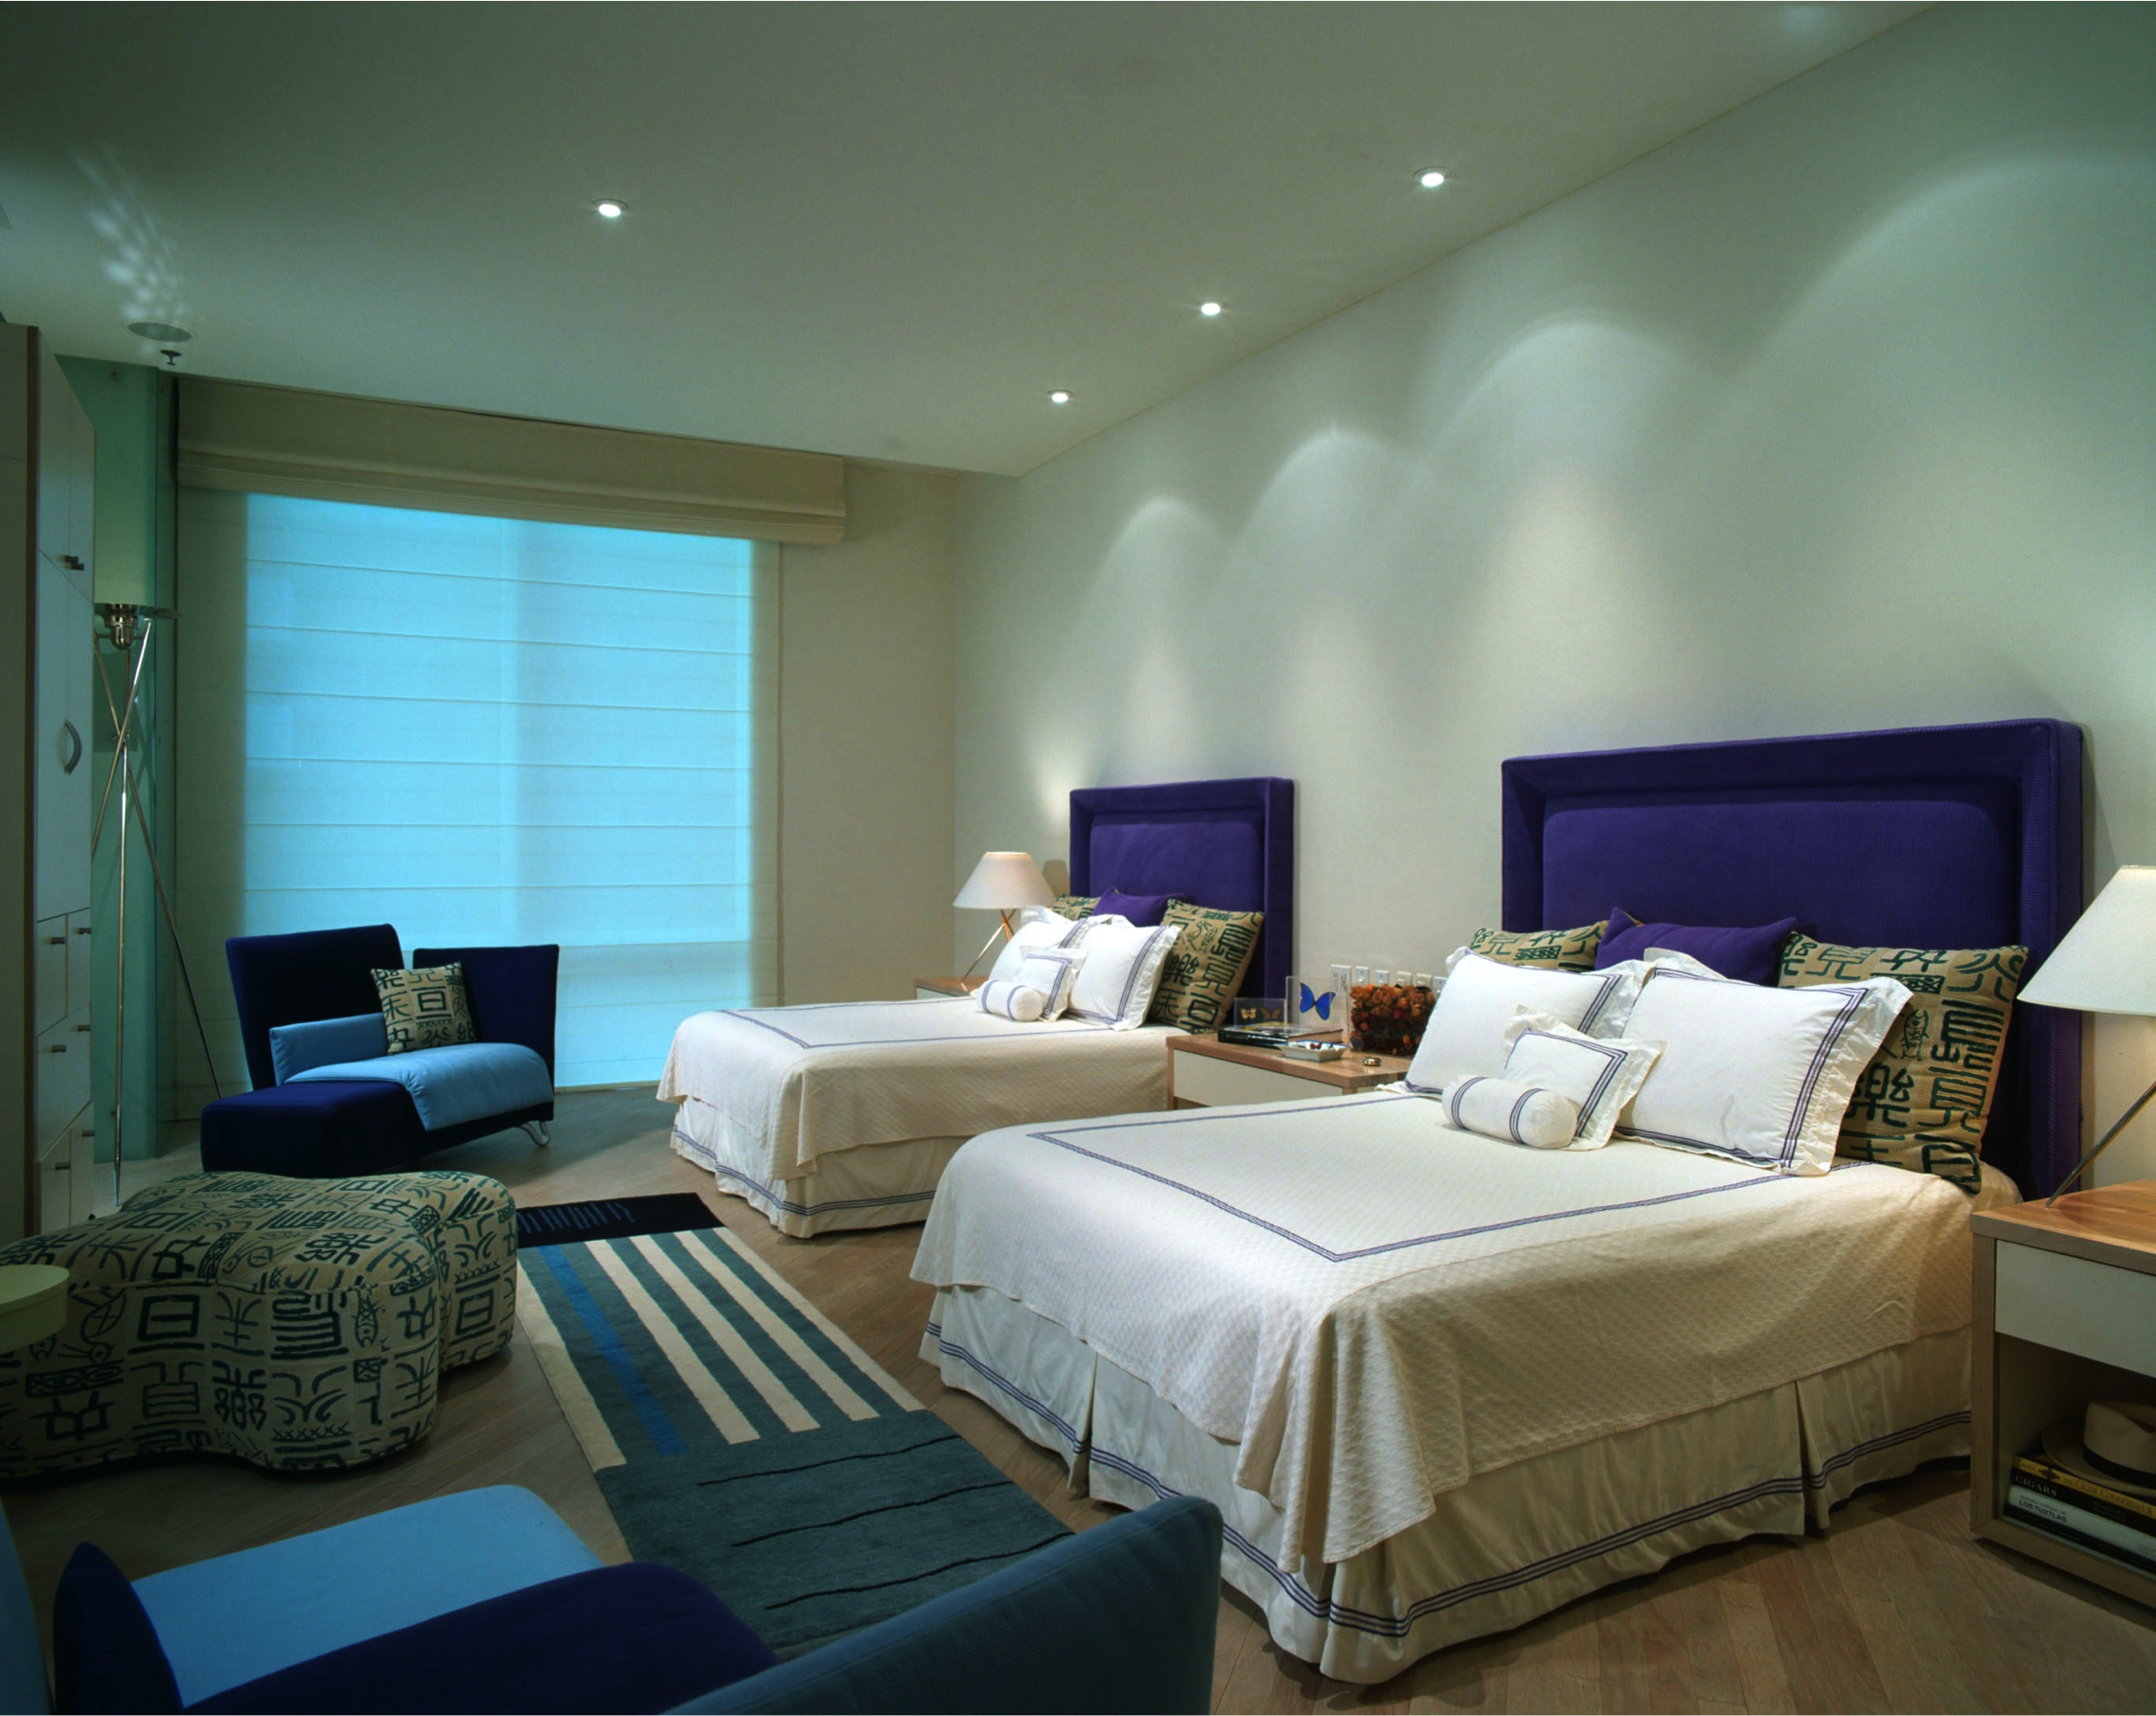 The guest bedroom has two queen beds with matching royal purple headboards. A long runner connects the two seating arrangements at either end of the room.